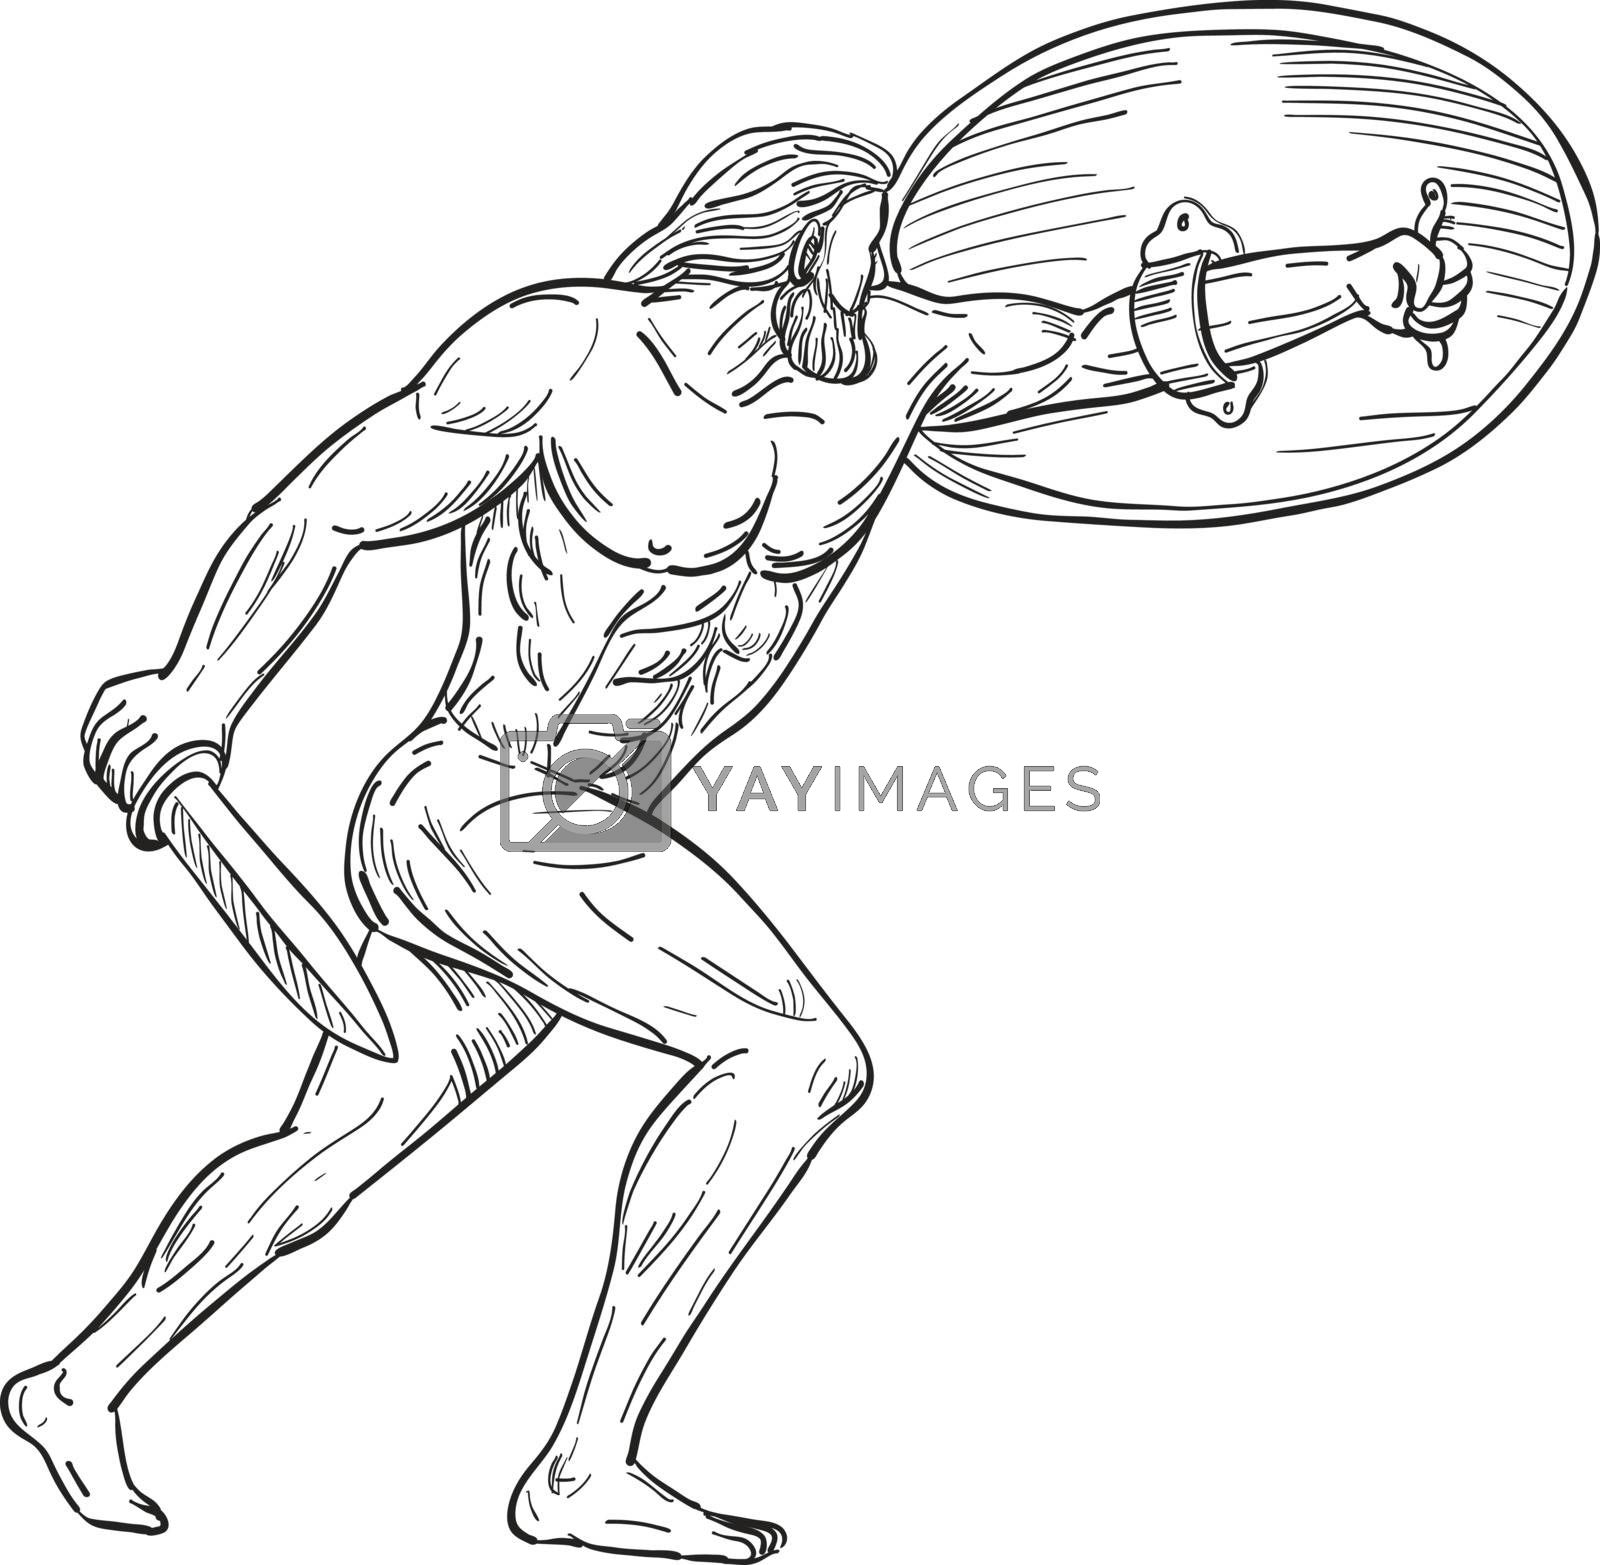 Heracles With Shield and Sword Drawing Black and White by patrimonio